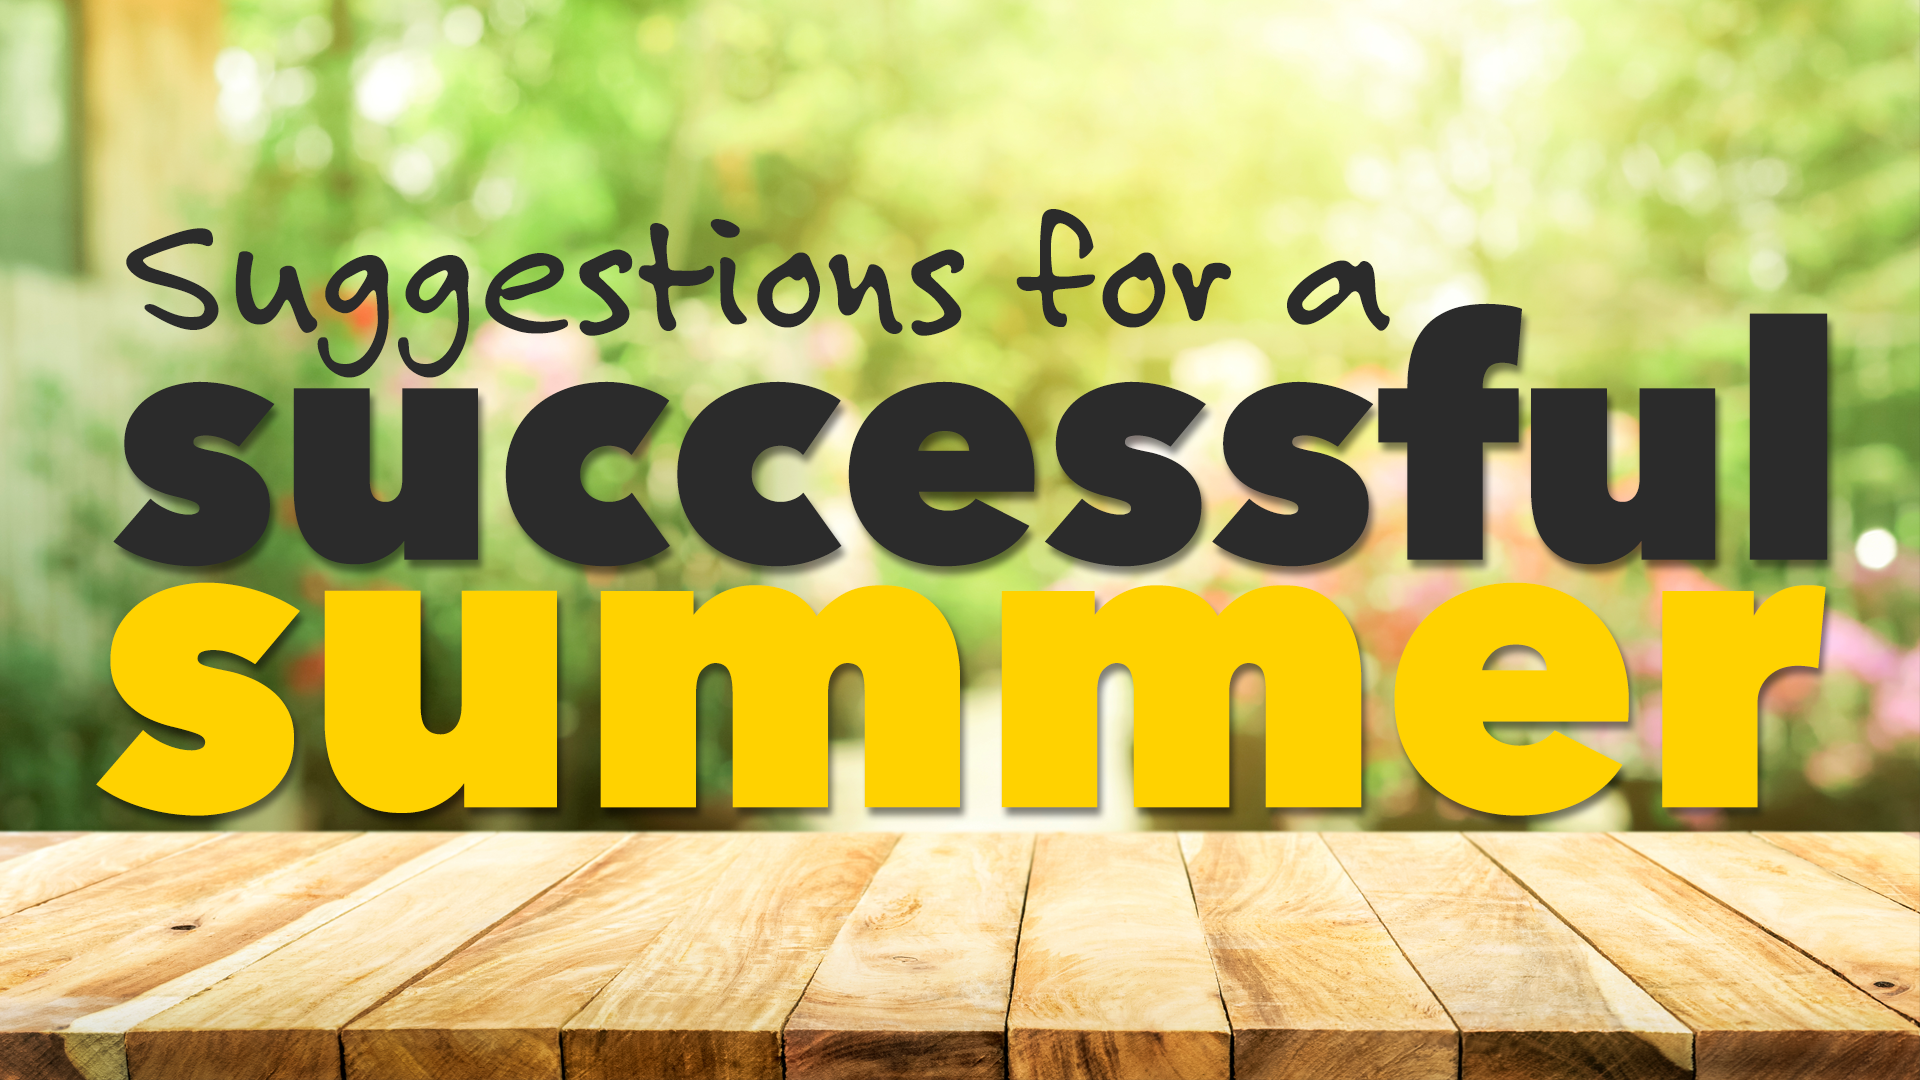 Suggestions for a Successful Summer (Part 2)